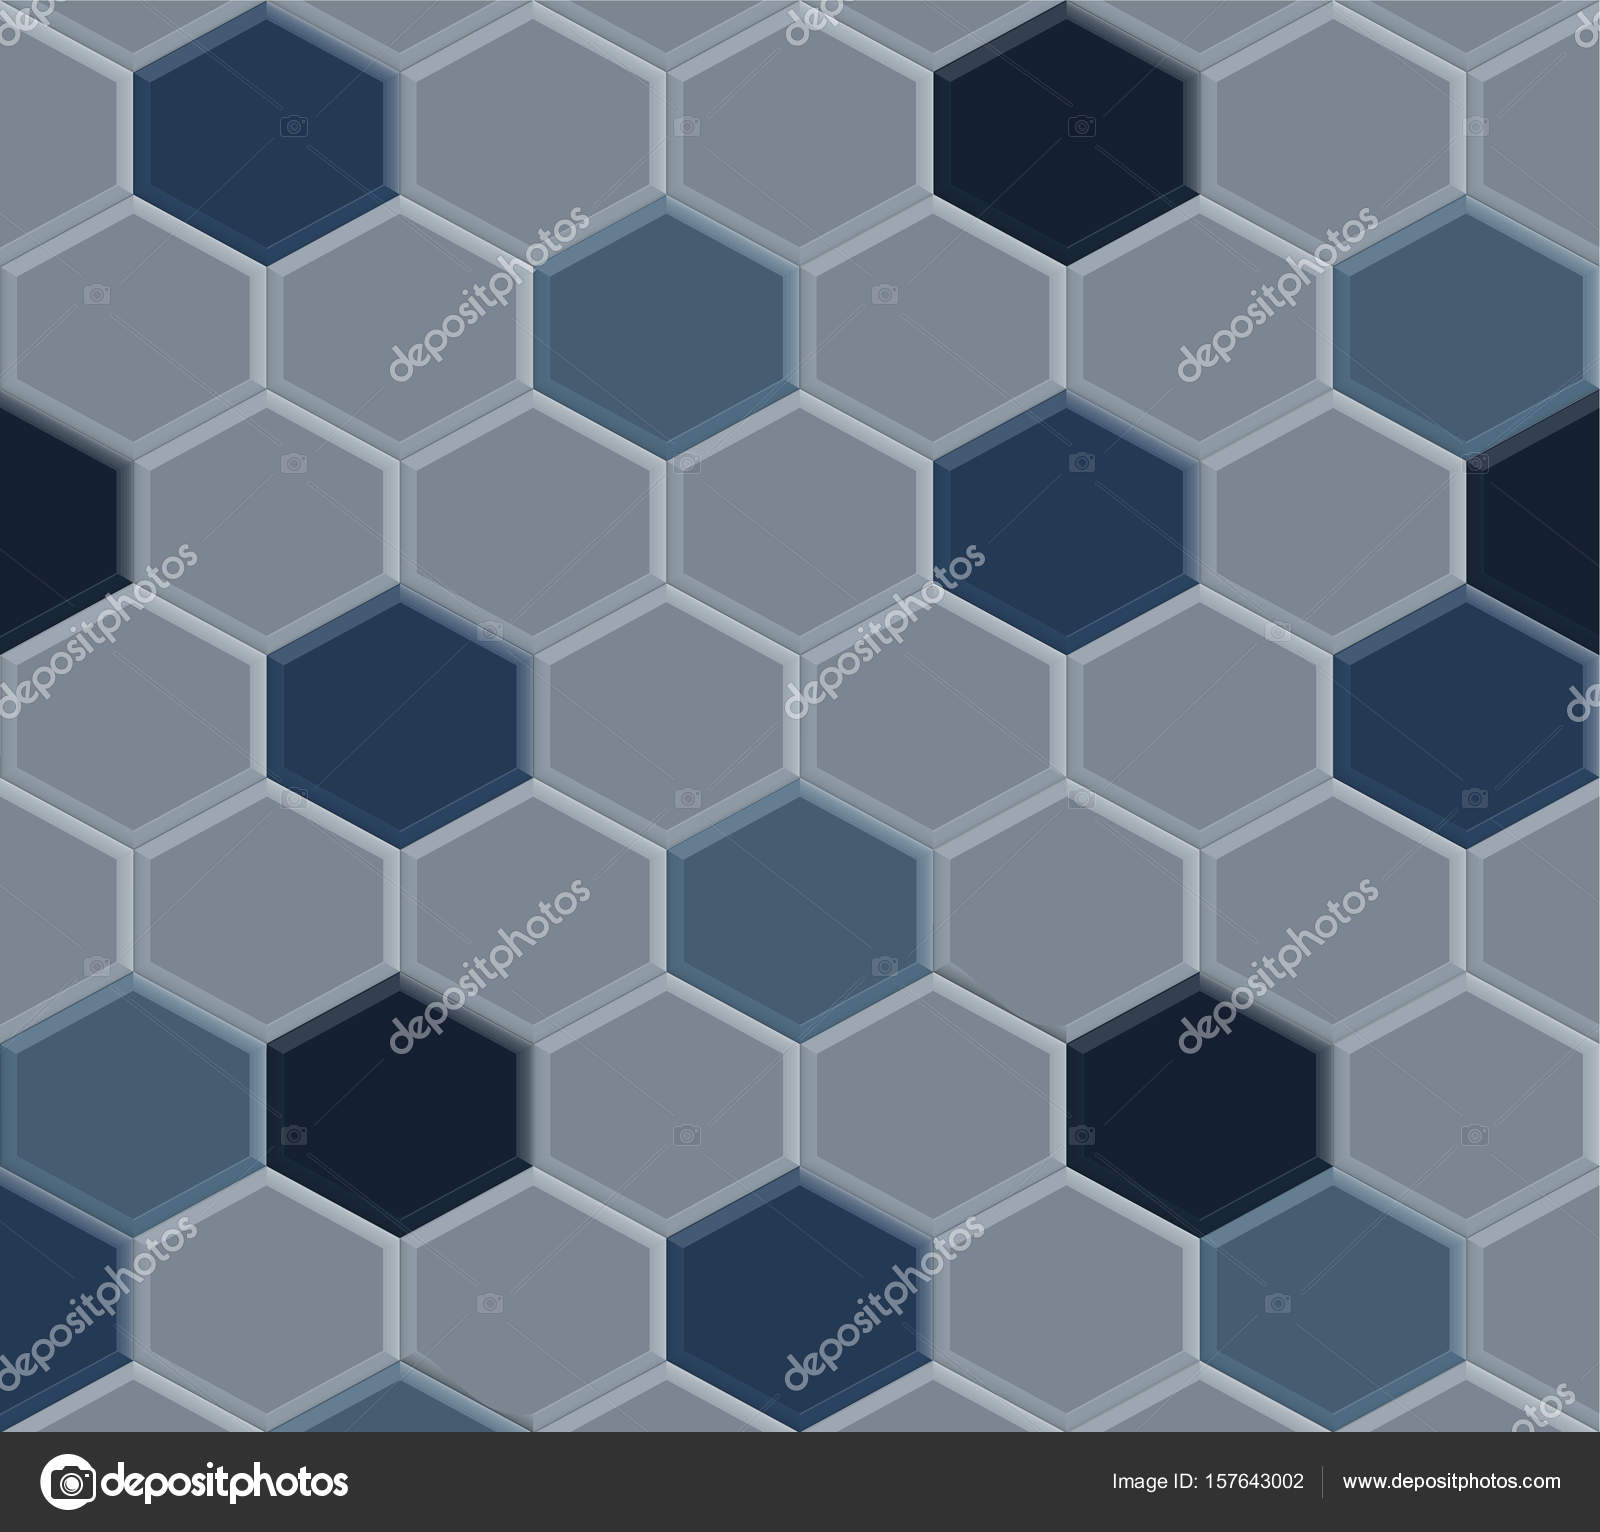 old hexagon blue tile — Stock Vector © chartcameraman #157643002